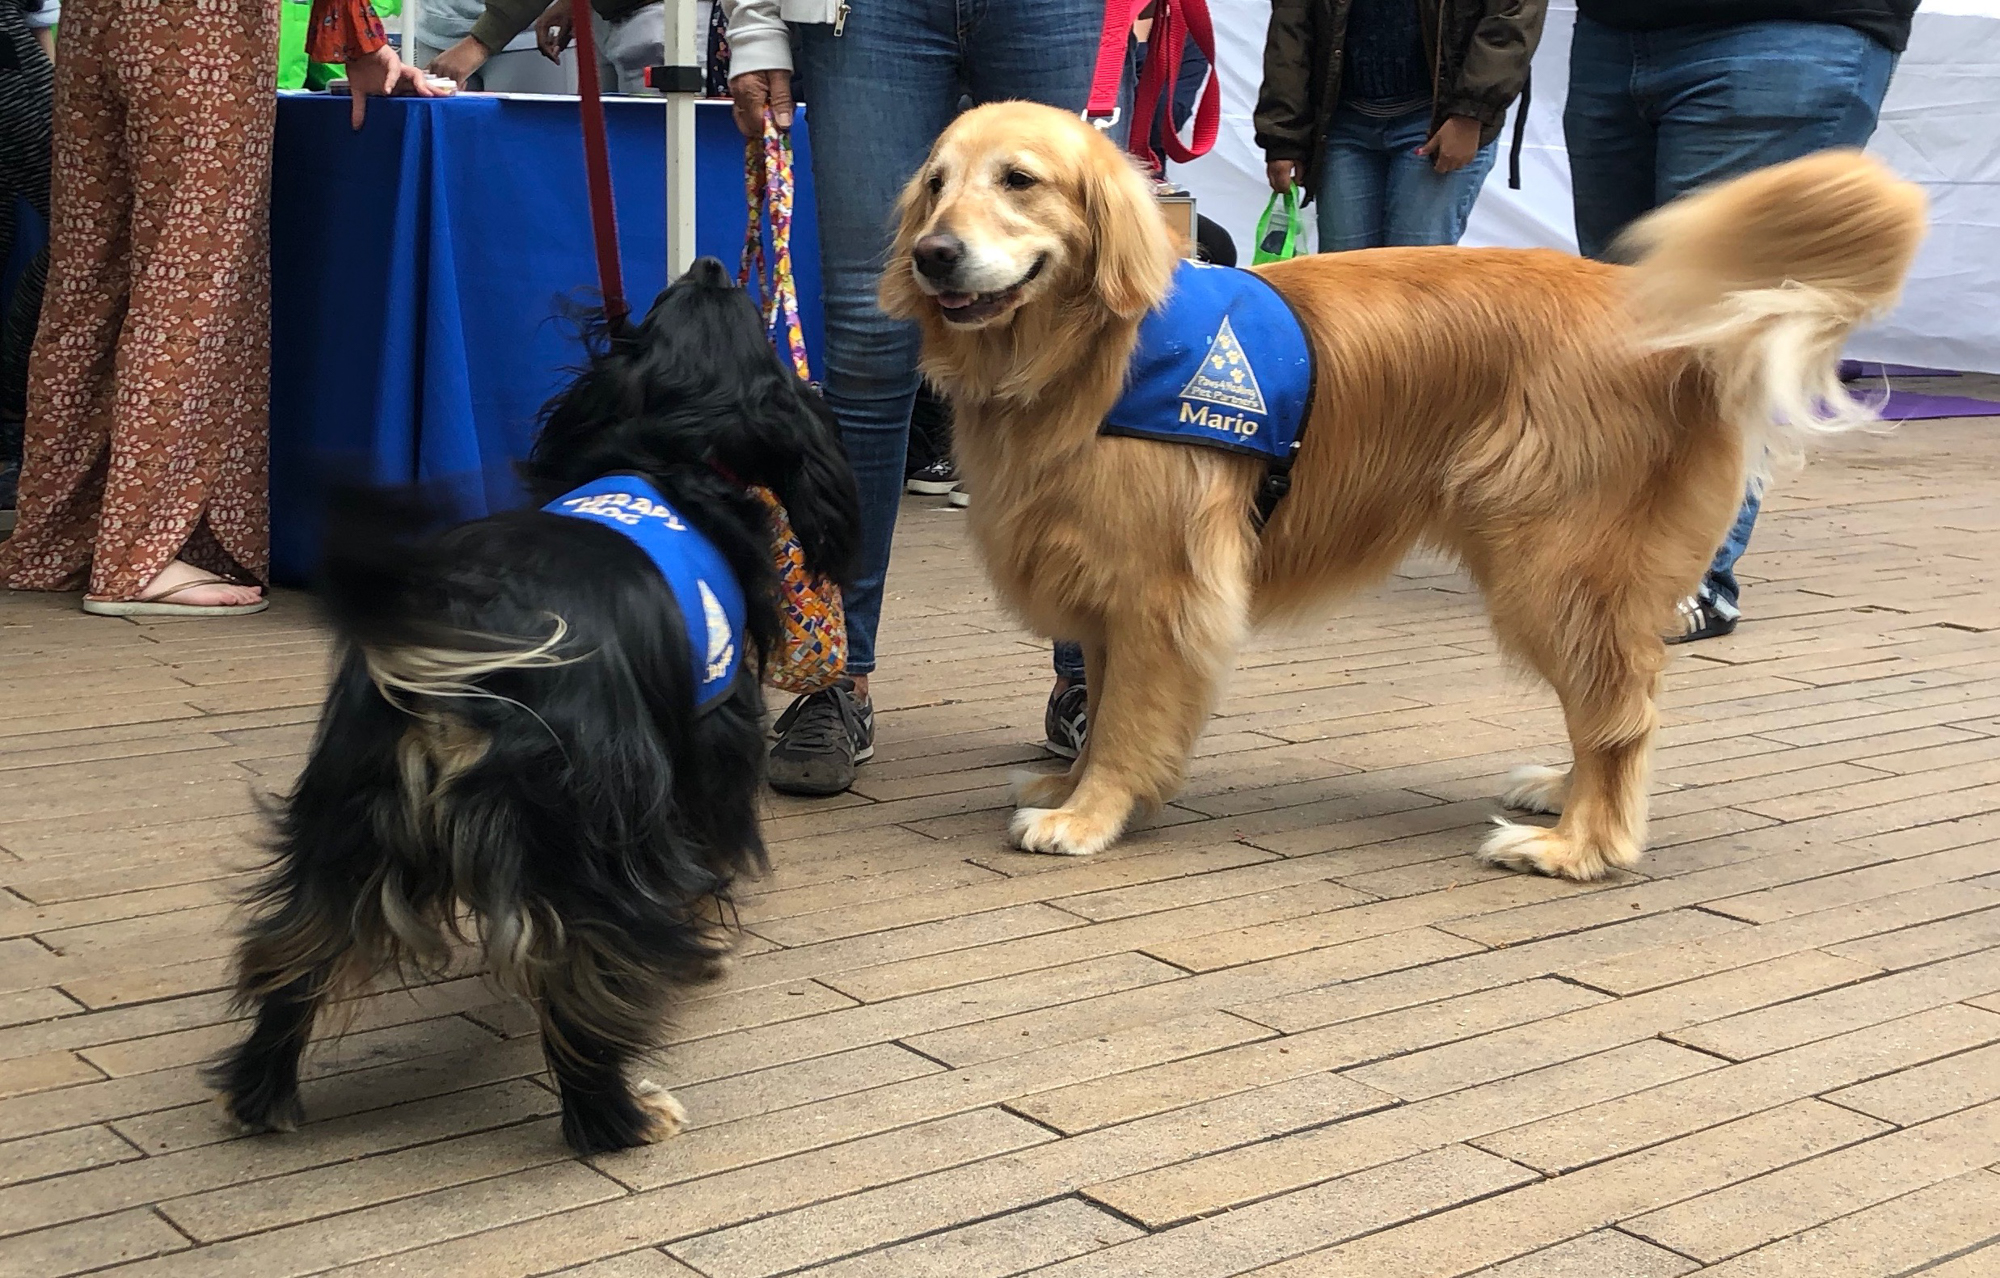 Therapy dogs Clayton (left) and Mario (right), came by Active Minds event on Thursday, May 24, 2018 at Santa Monica College, in Santa Monica, California to say hello to students and help reduce their stress. (Jennifer Nystrom/Corsair Photo)